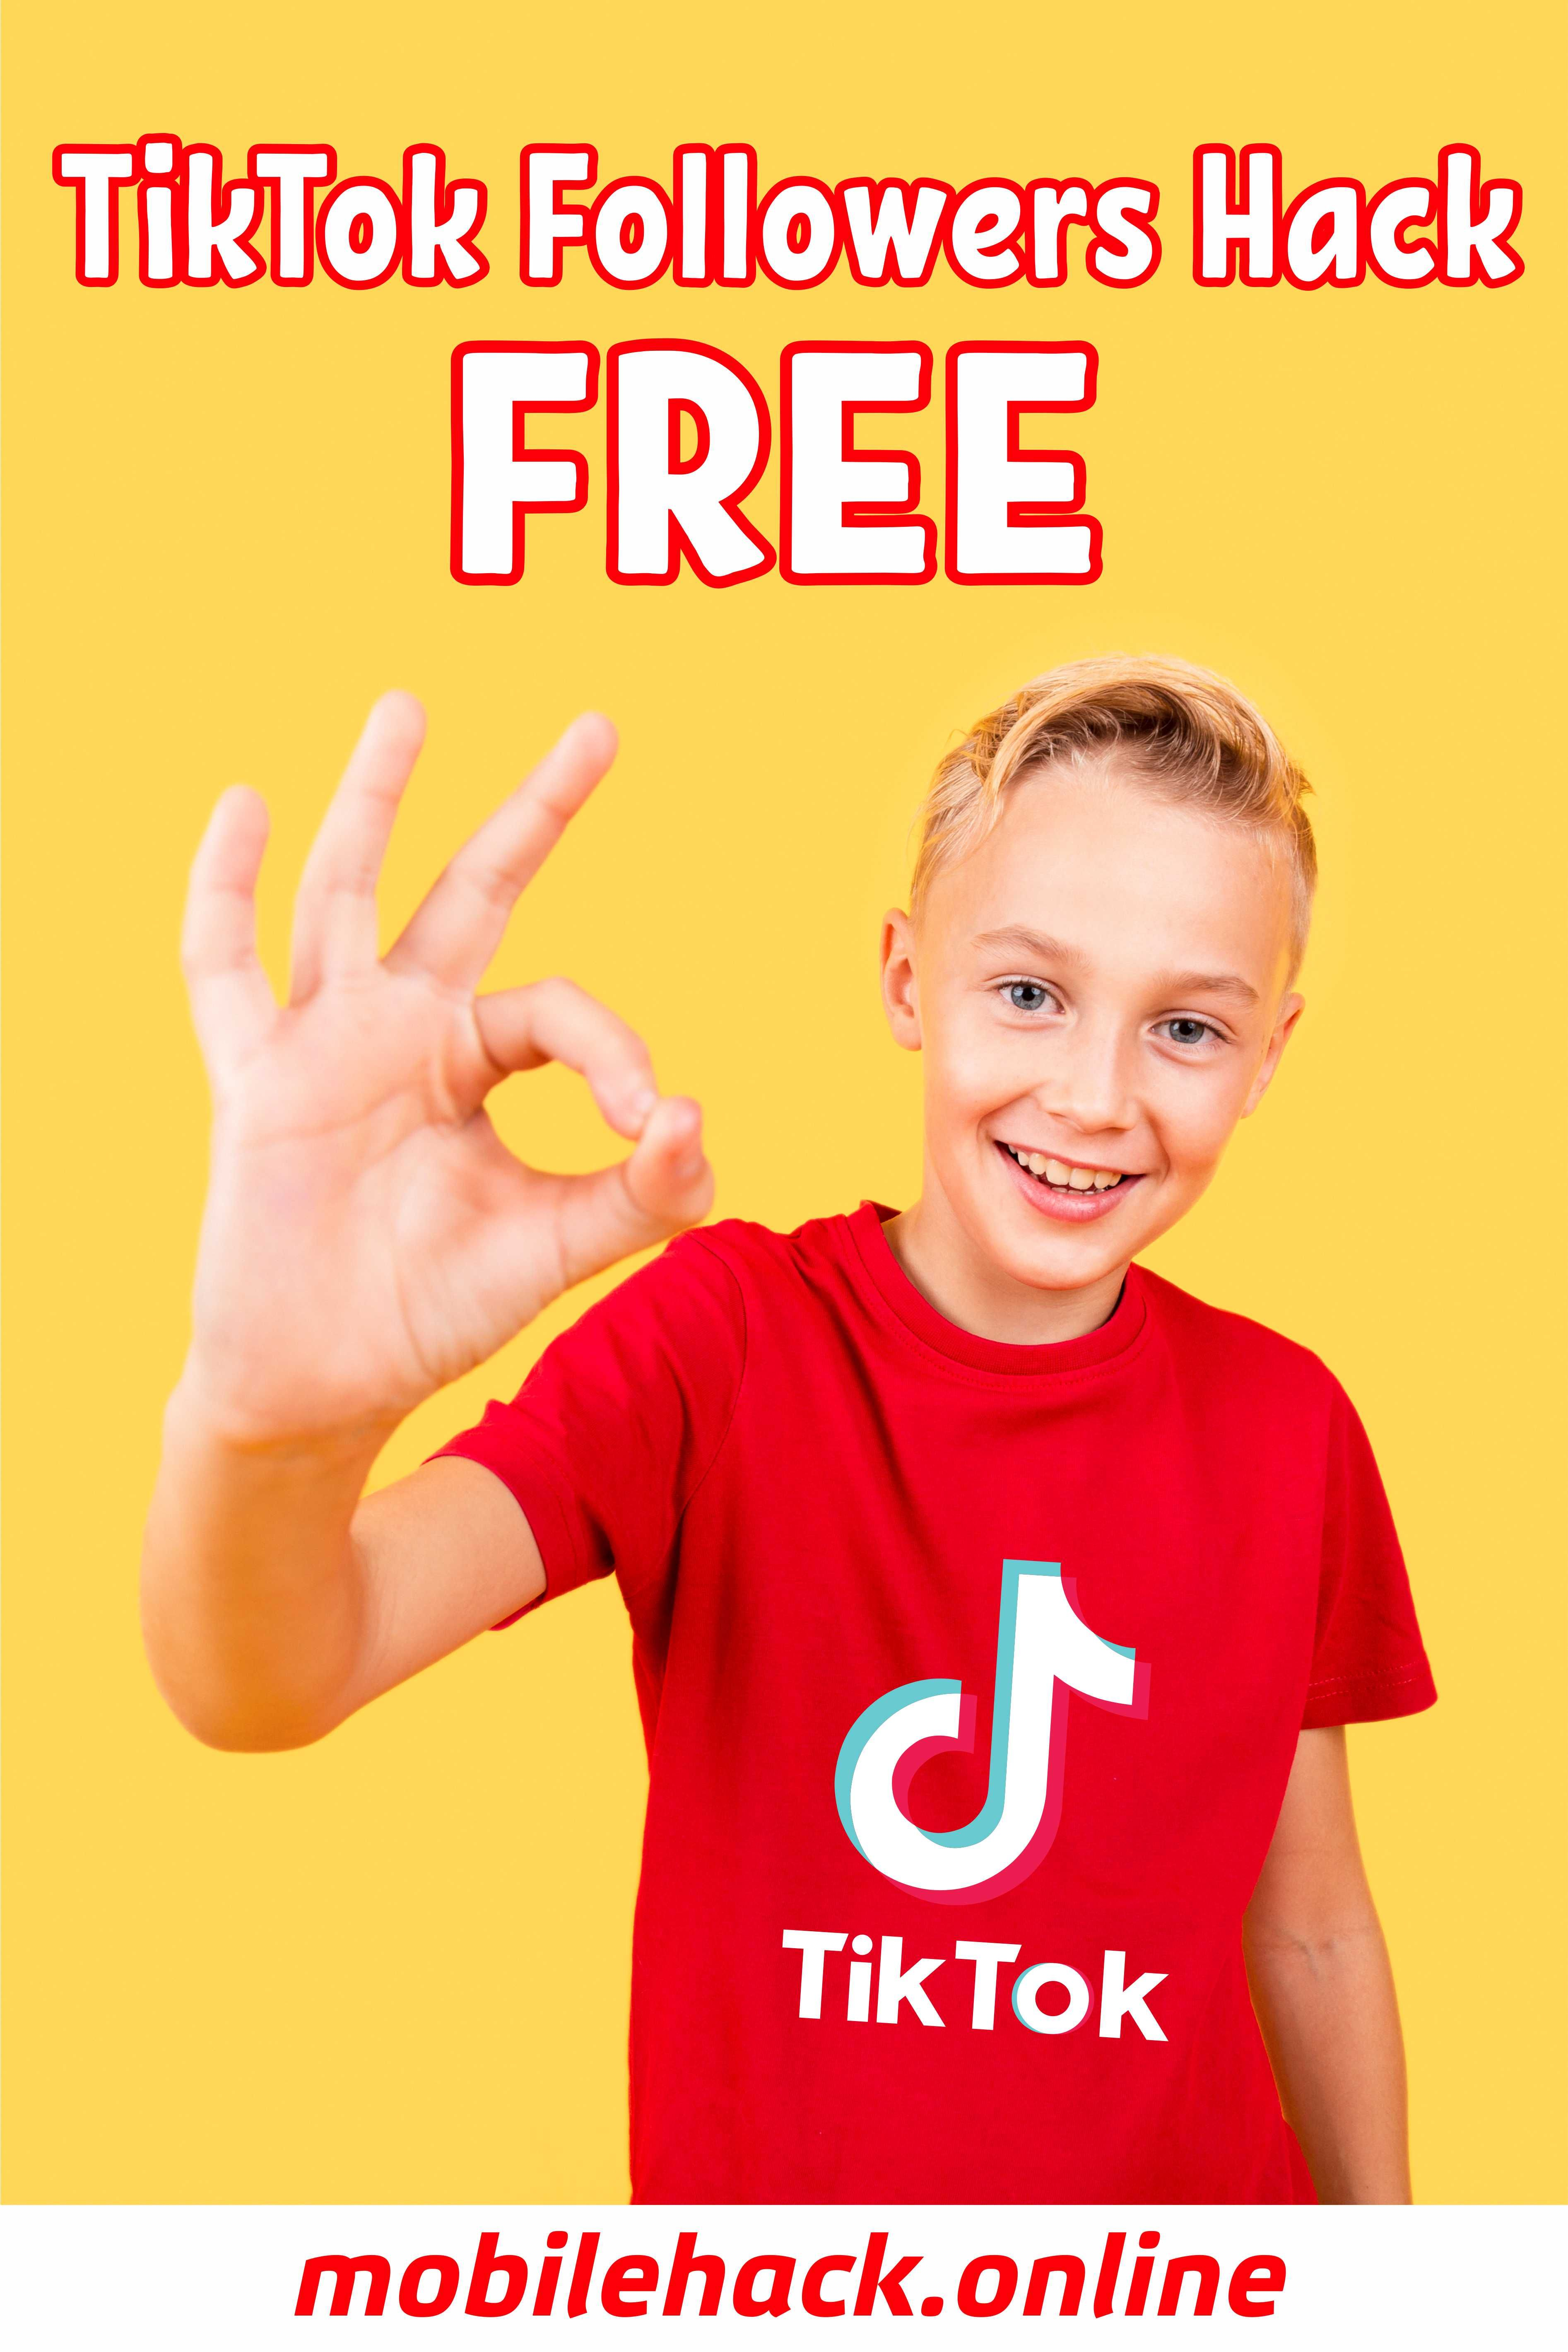 How To Get Tiktok Followers For Free Free Followers On Instagram How To Get Followers Instagram Likes And Followers